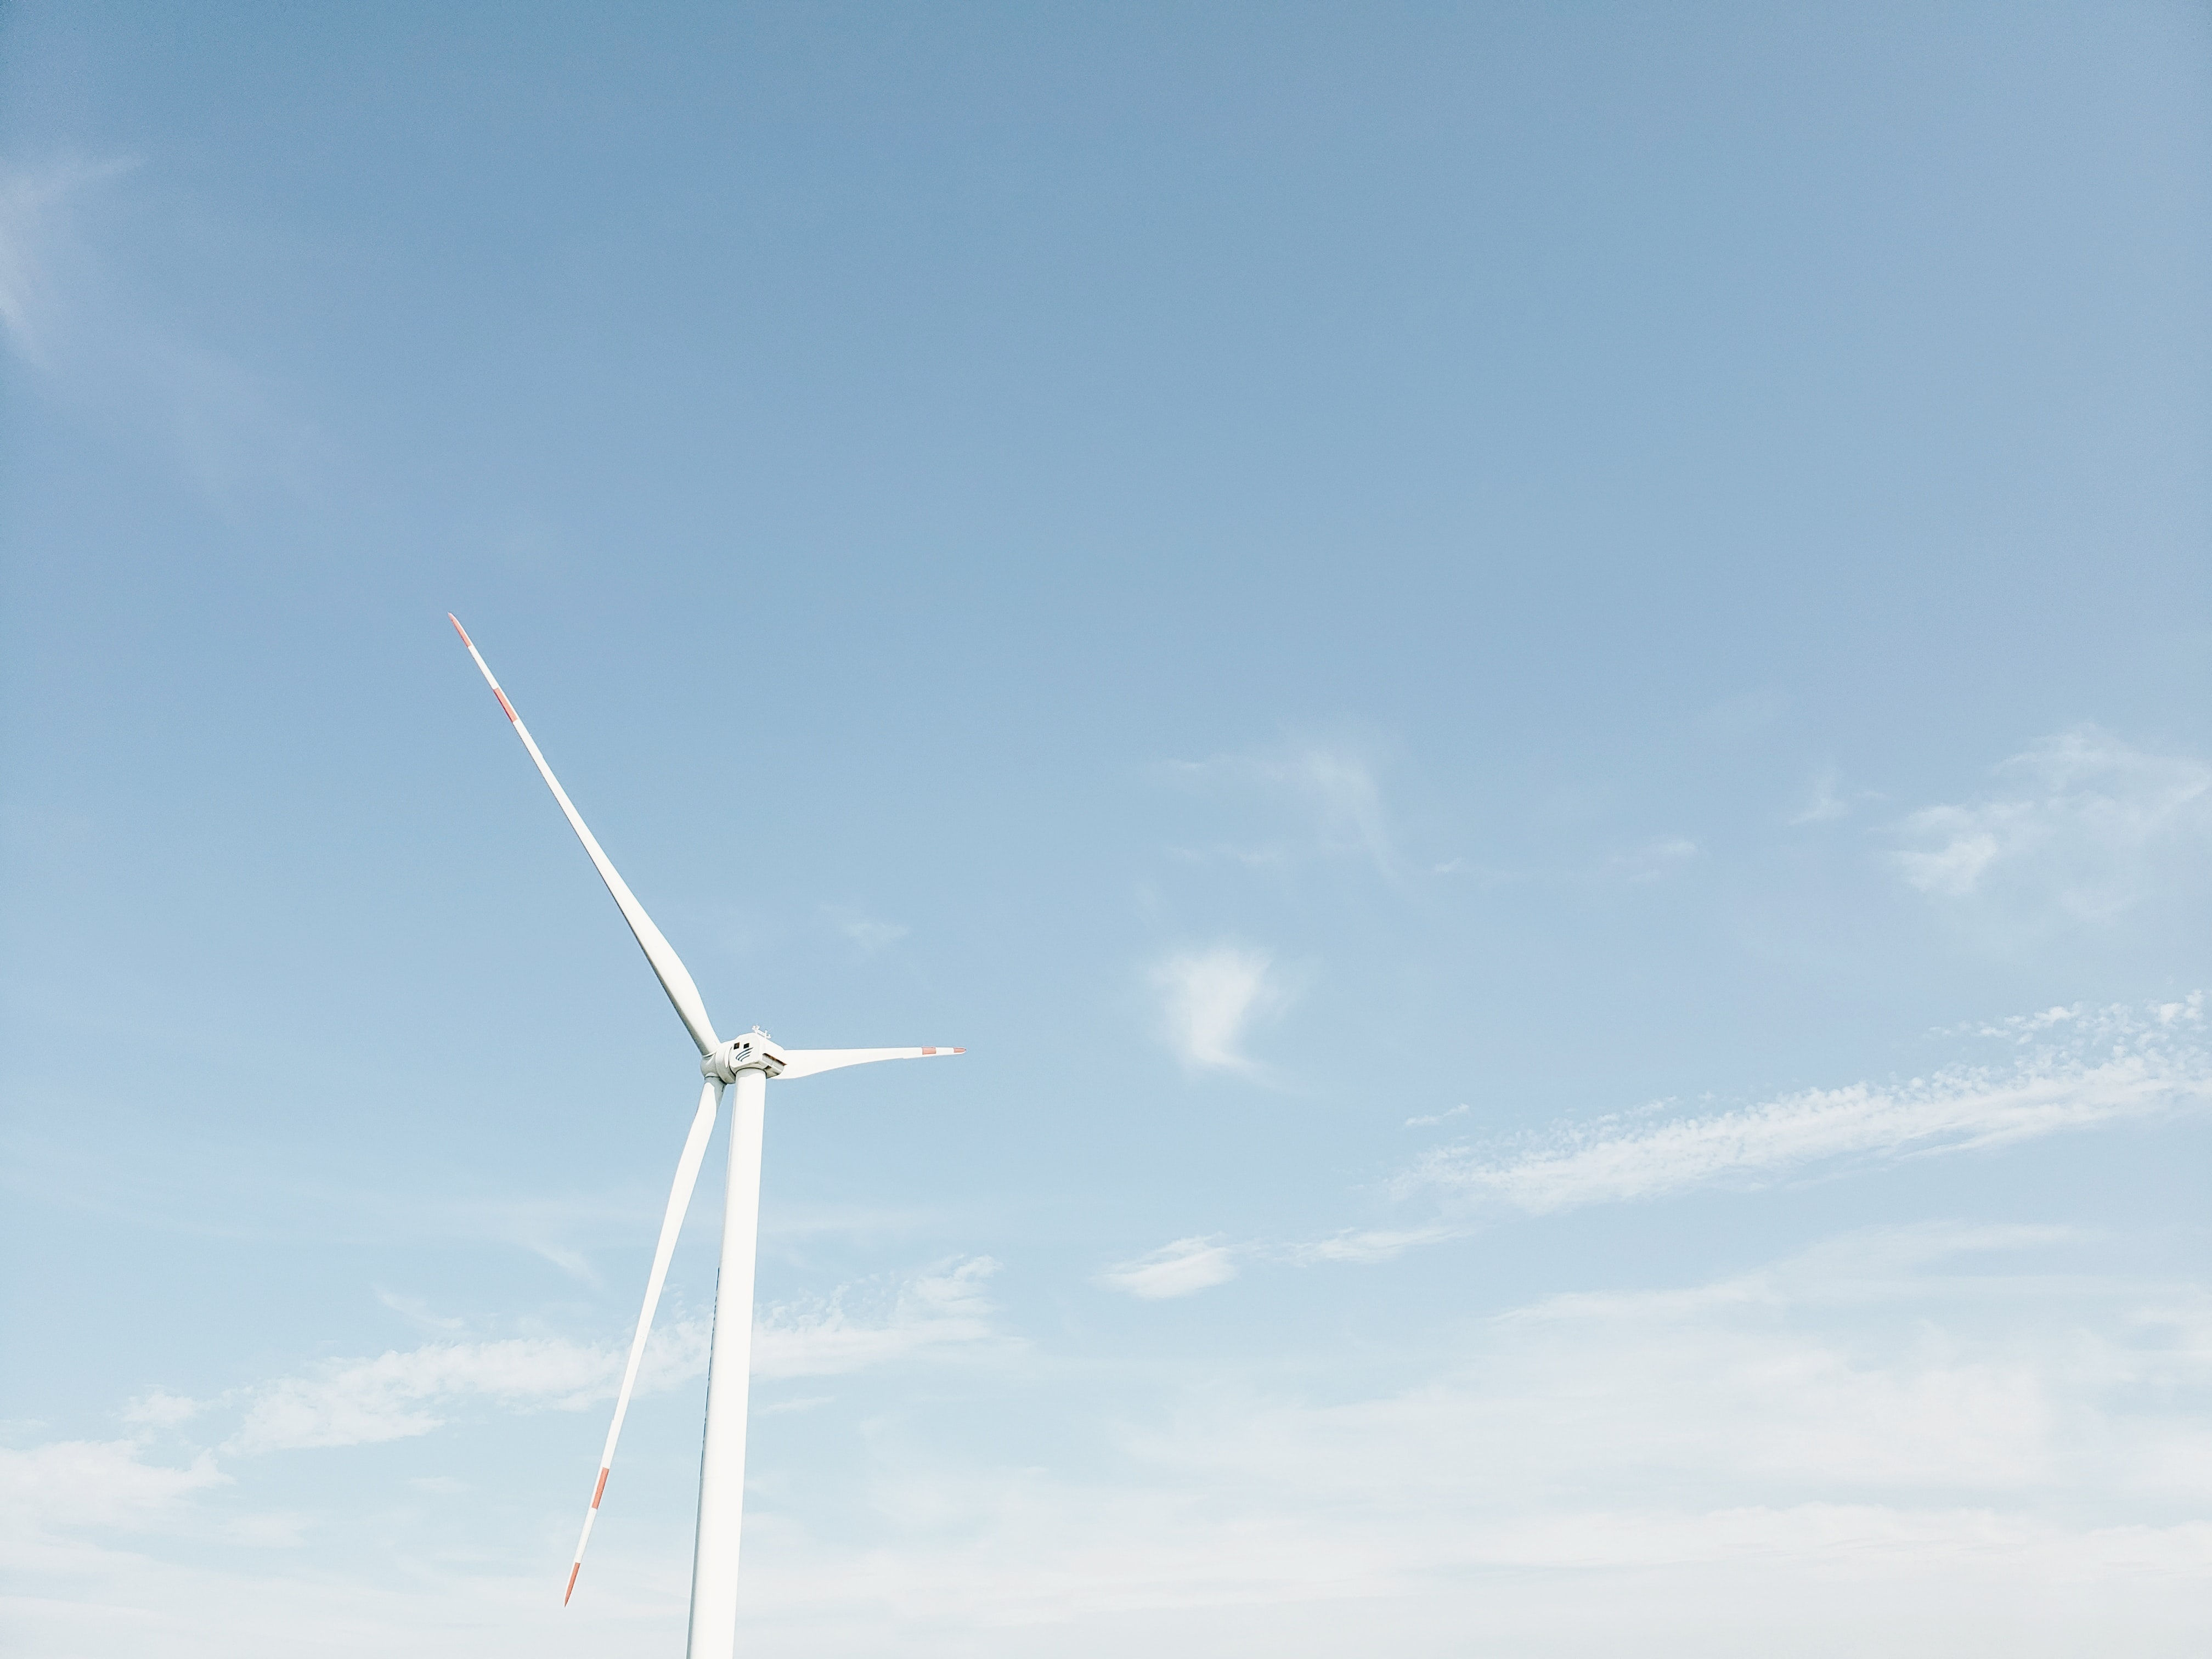 wind mill under blue sky and white clouds during daytime